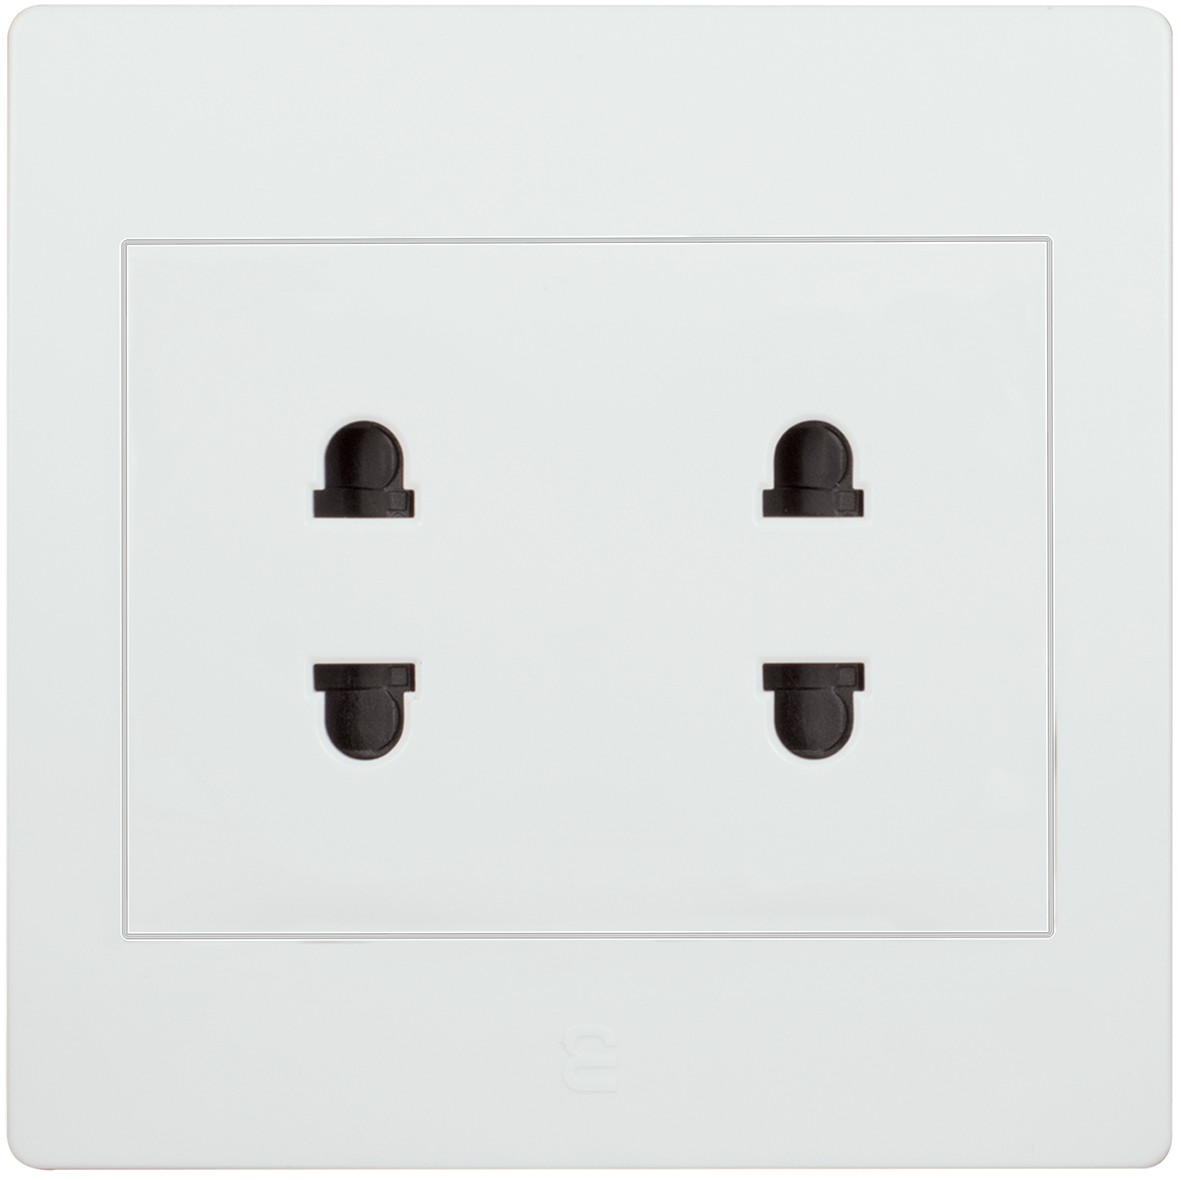 Double socket euro-american type